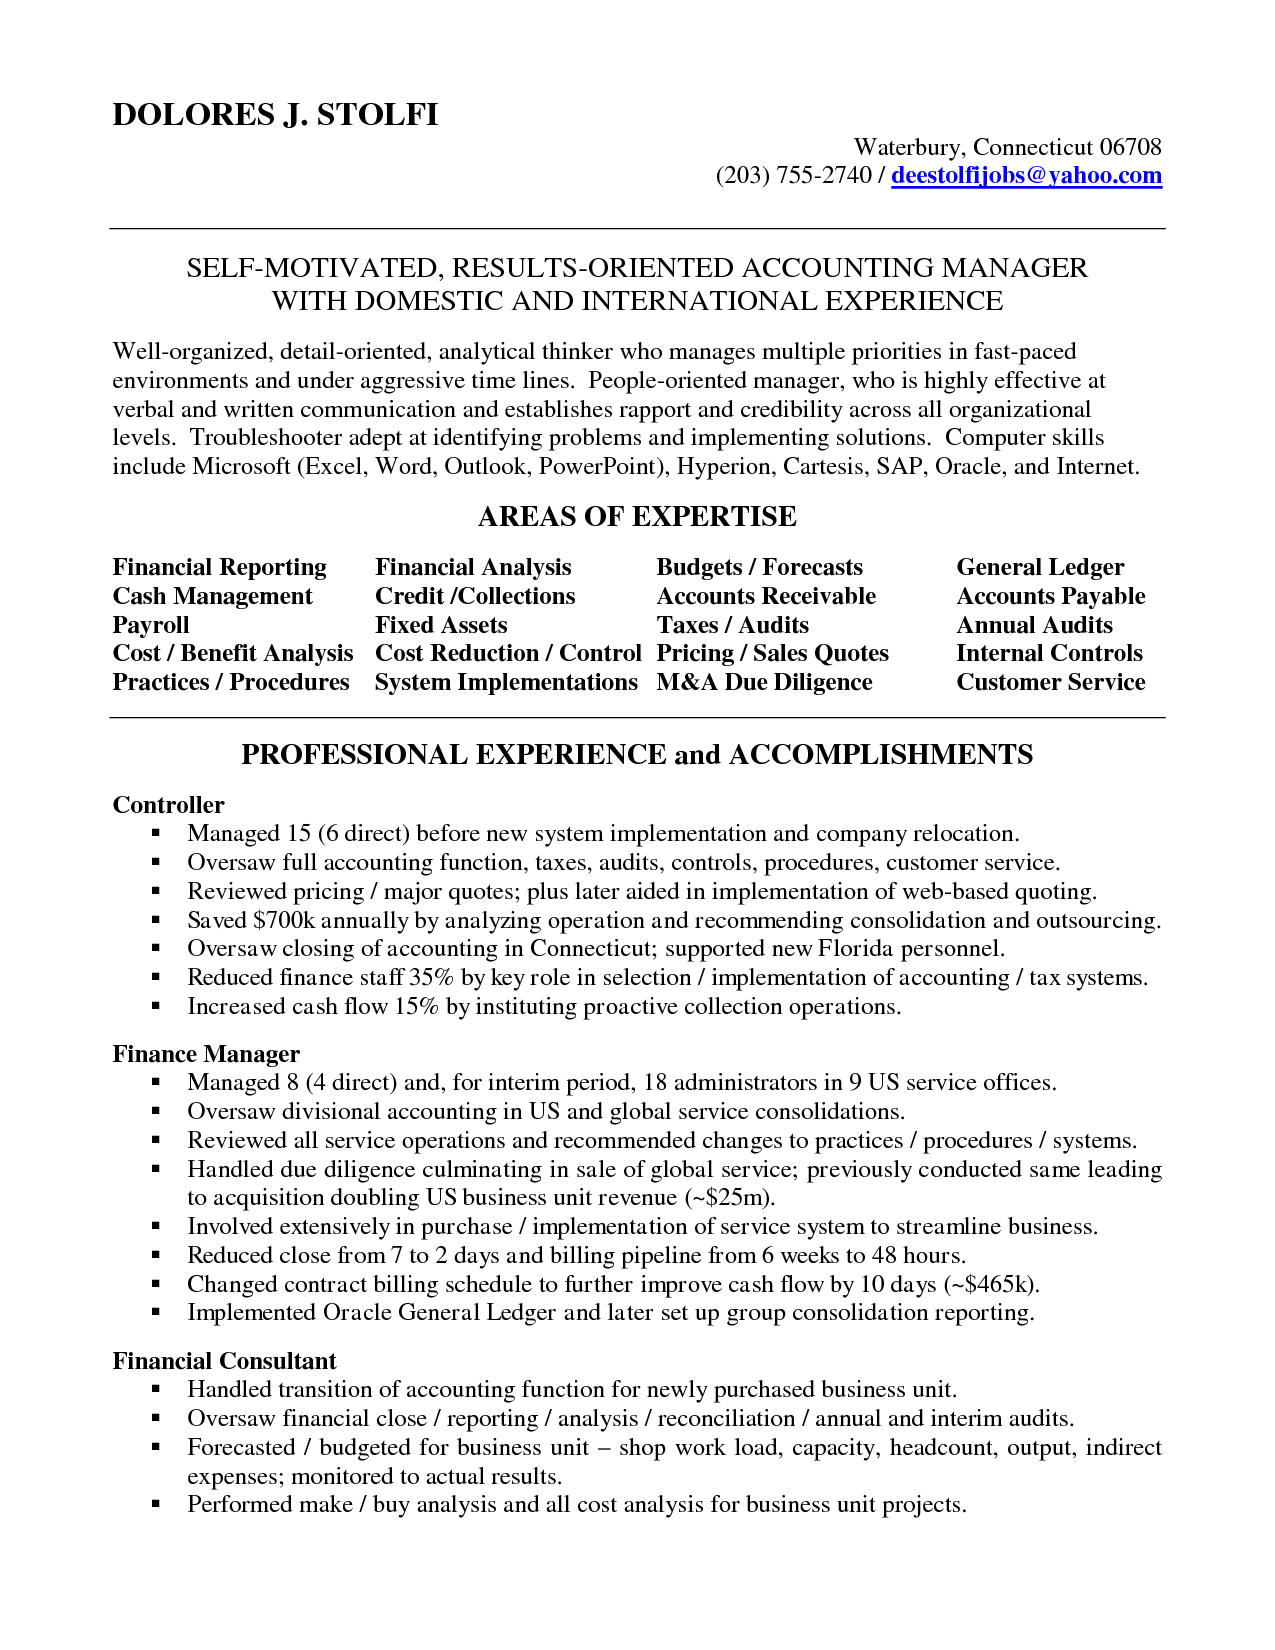 accounting manager resume | Accounting Manager in NYC Resume Delores ...